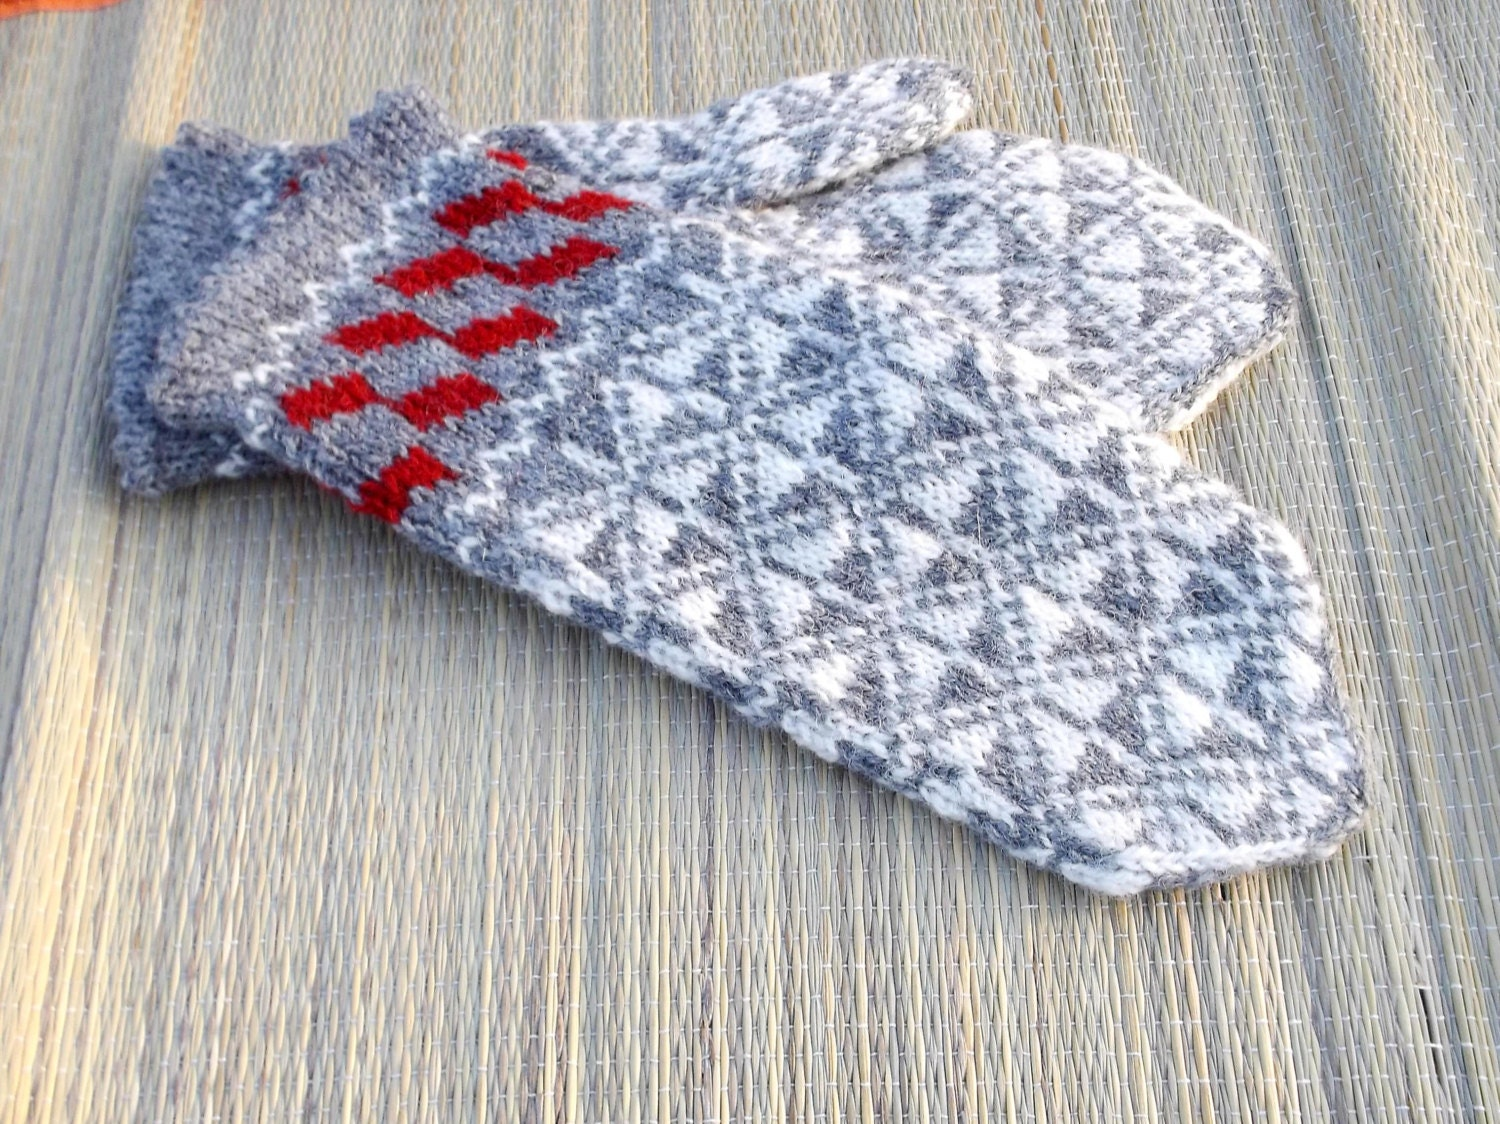 Mittens hand knitted latvian mittens knitting nordic mitts